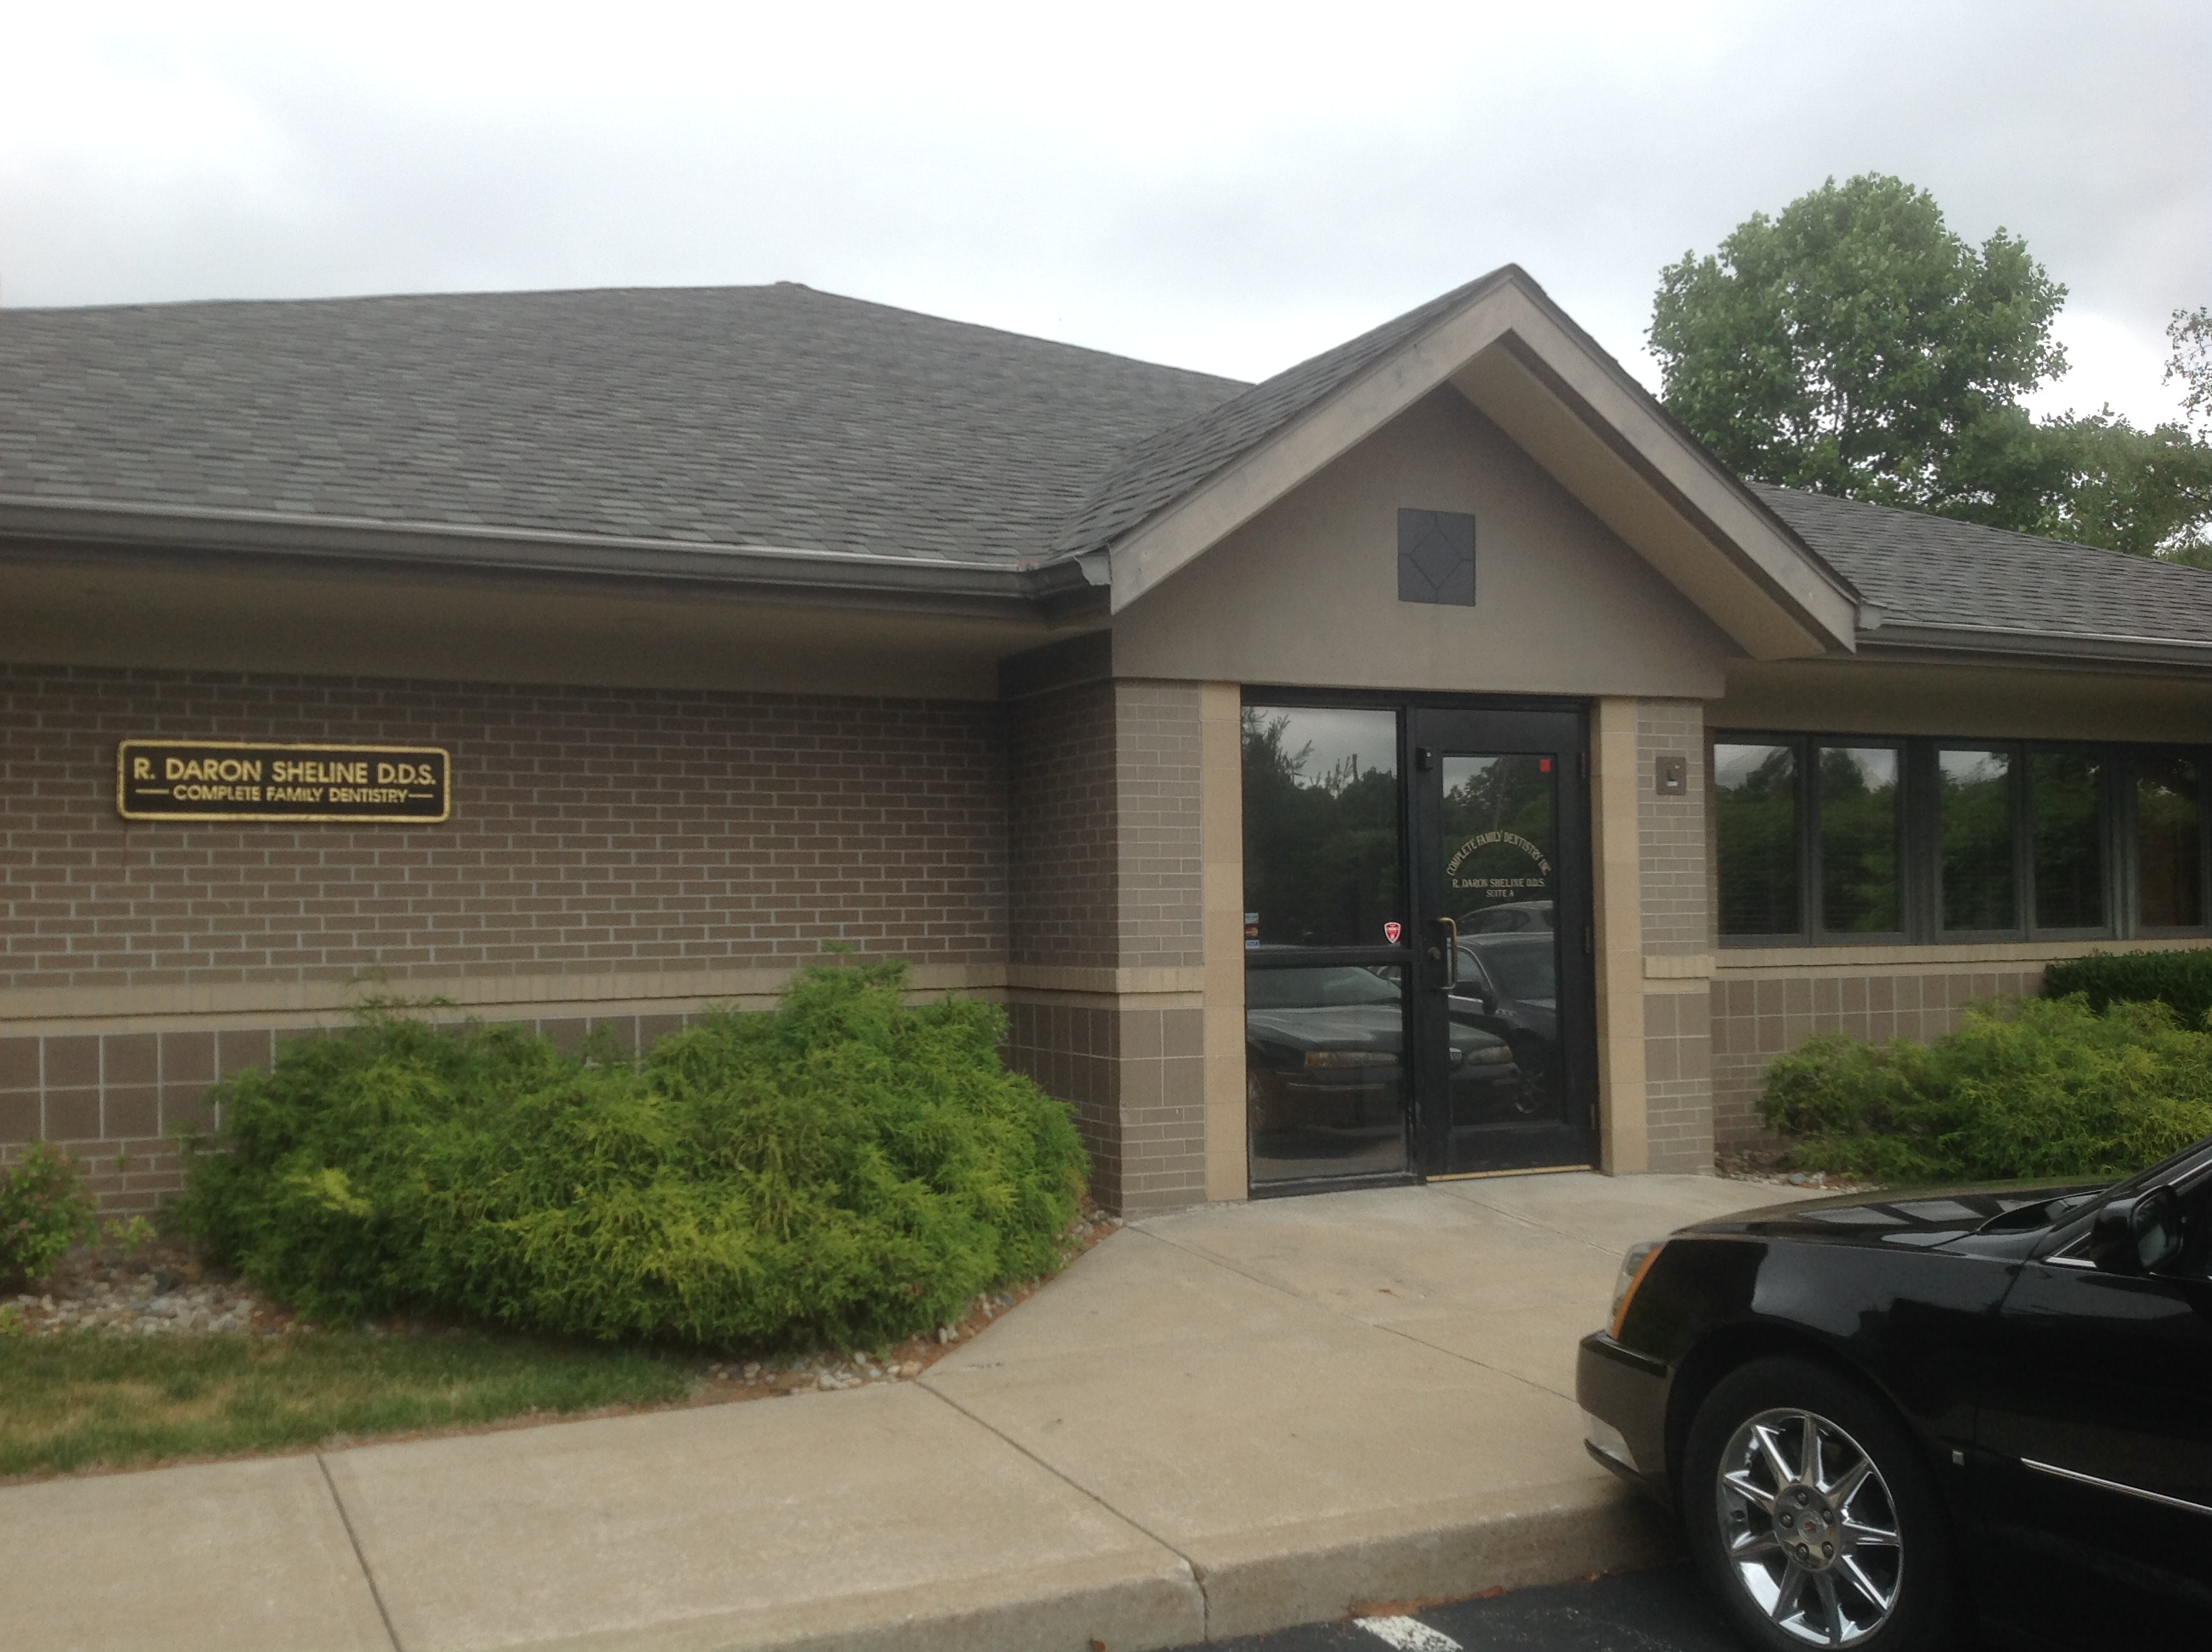 Complete Family Dentistry - R. Daron Sheline DDS image 13